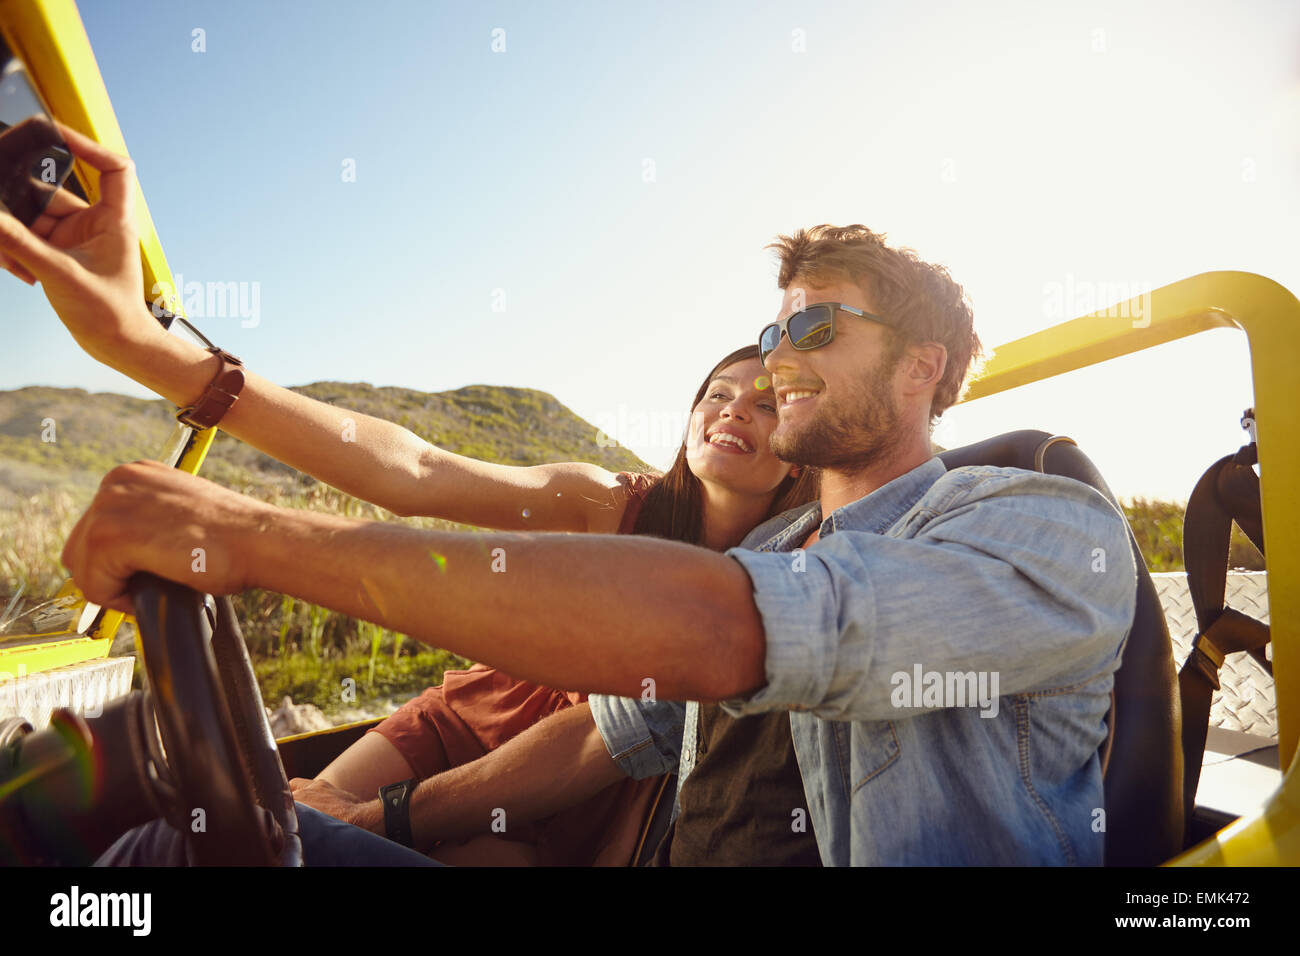 Couple on road trip, man driving a car and woman taking selfie on her mobile phone. - Stock Image